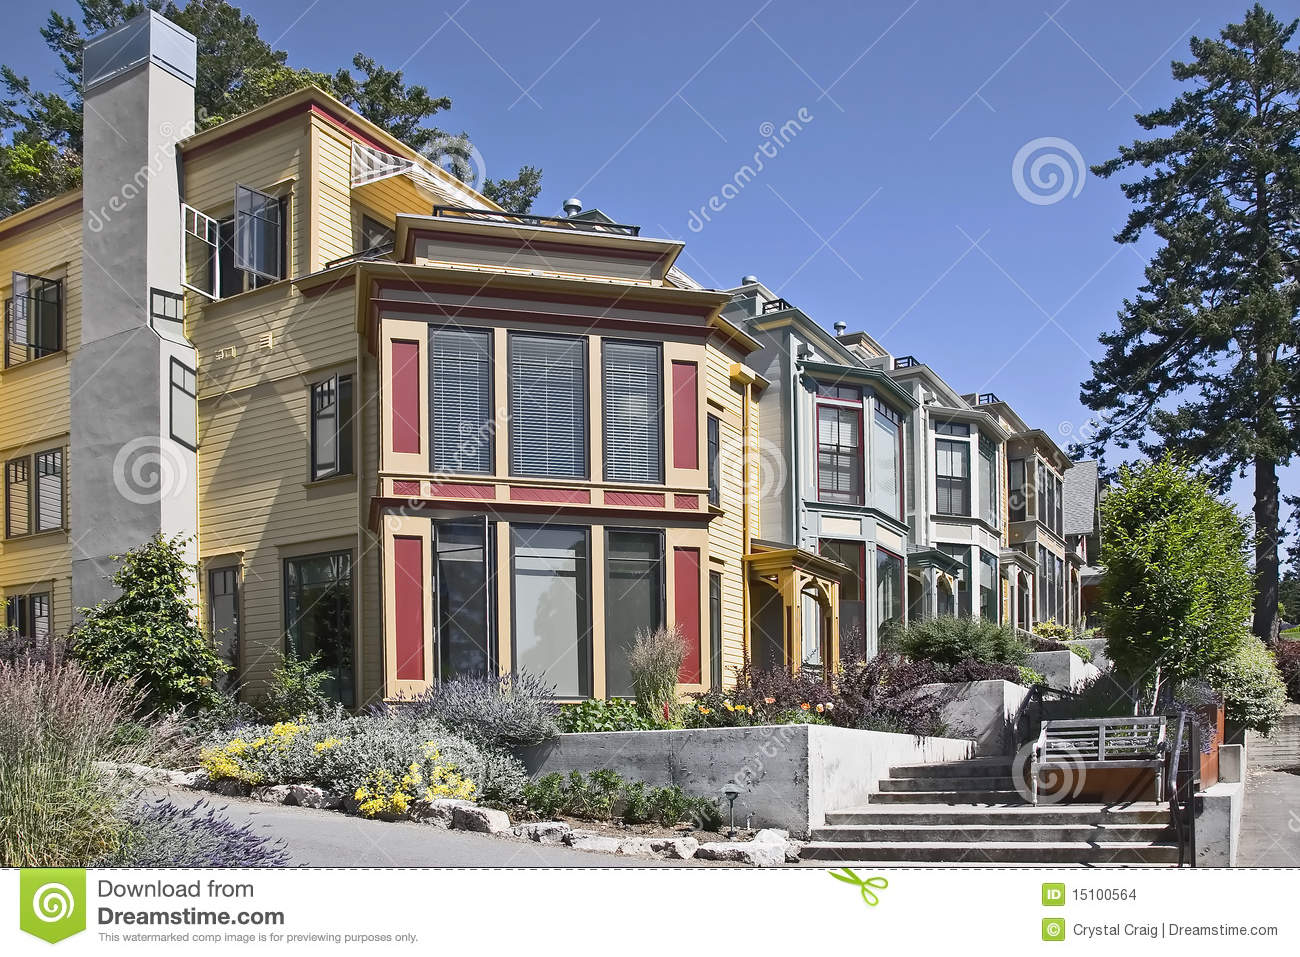 Best Kitchen Gallery: Modern Pacific Northwest Style Town Homes Stock Photo Image Of of Pacific Northwest Style Homes on rachelxblog.com